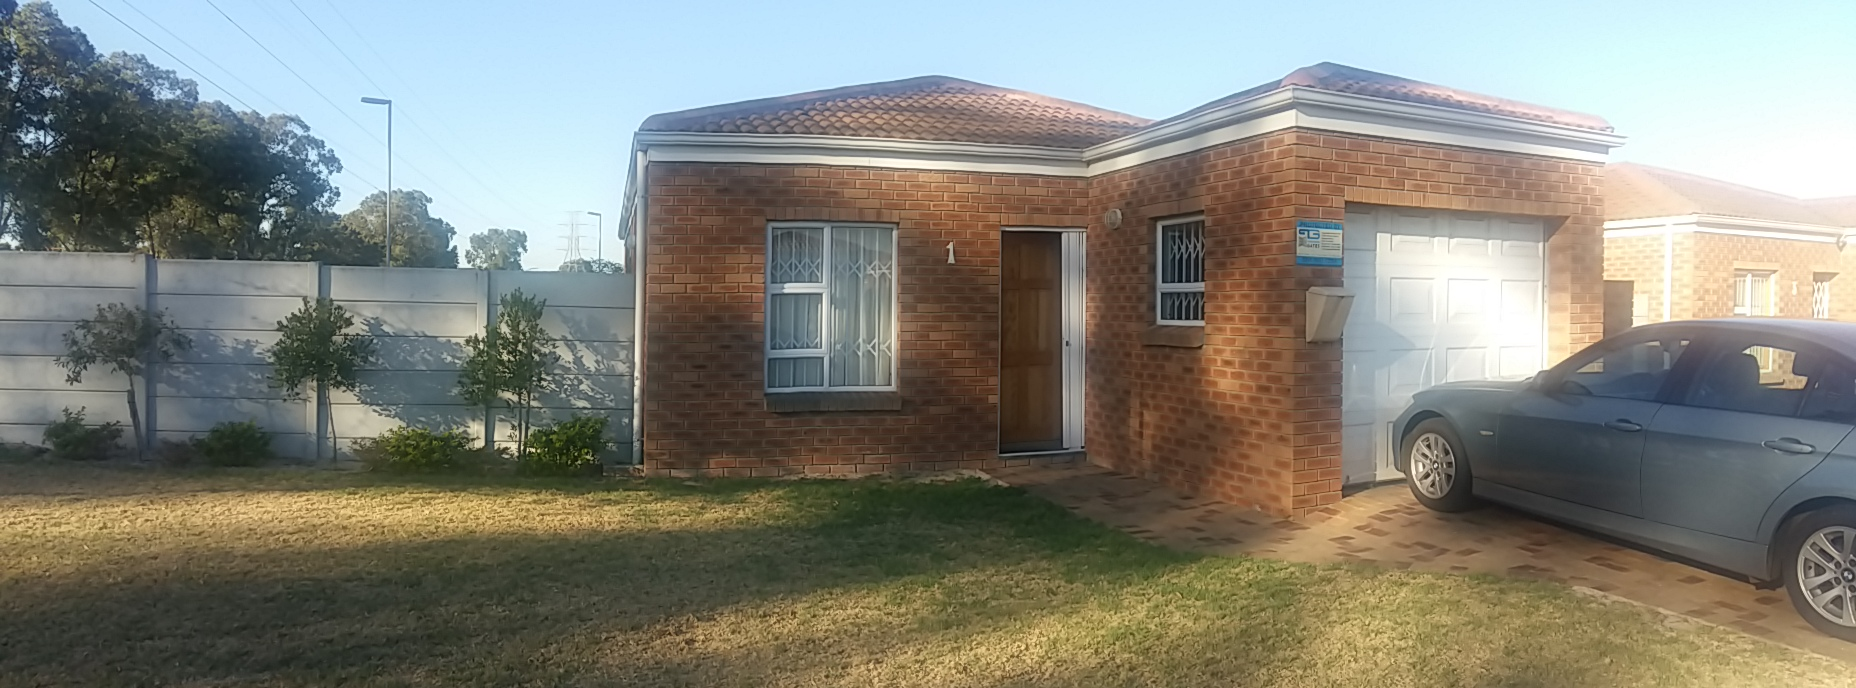 3 Bedroom, 2 bathroom house available in Stikland for 1 March @ R9 800 PM